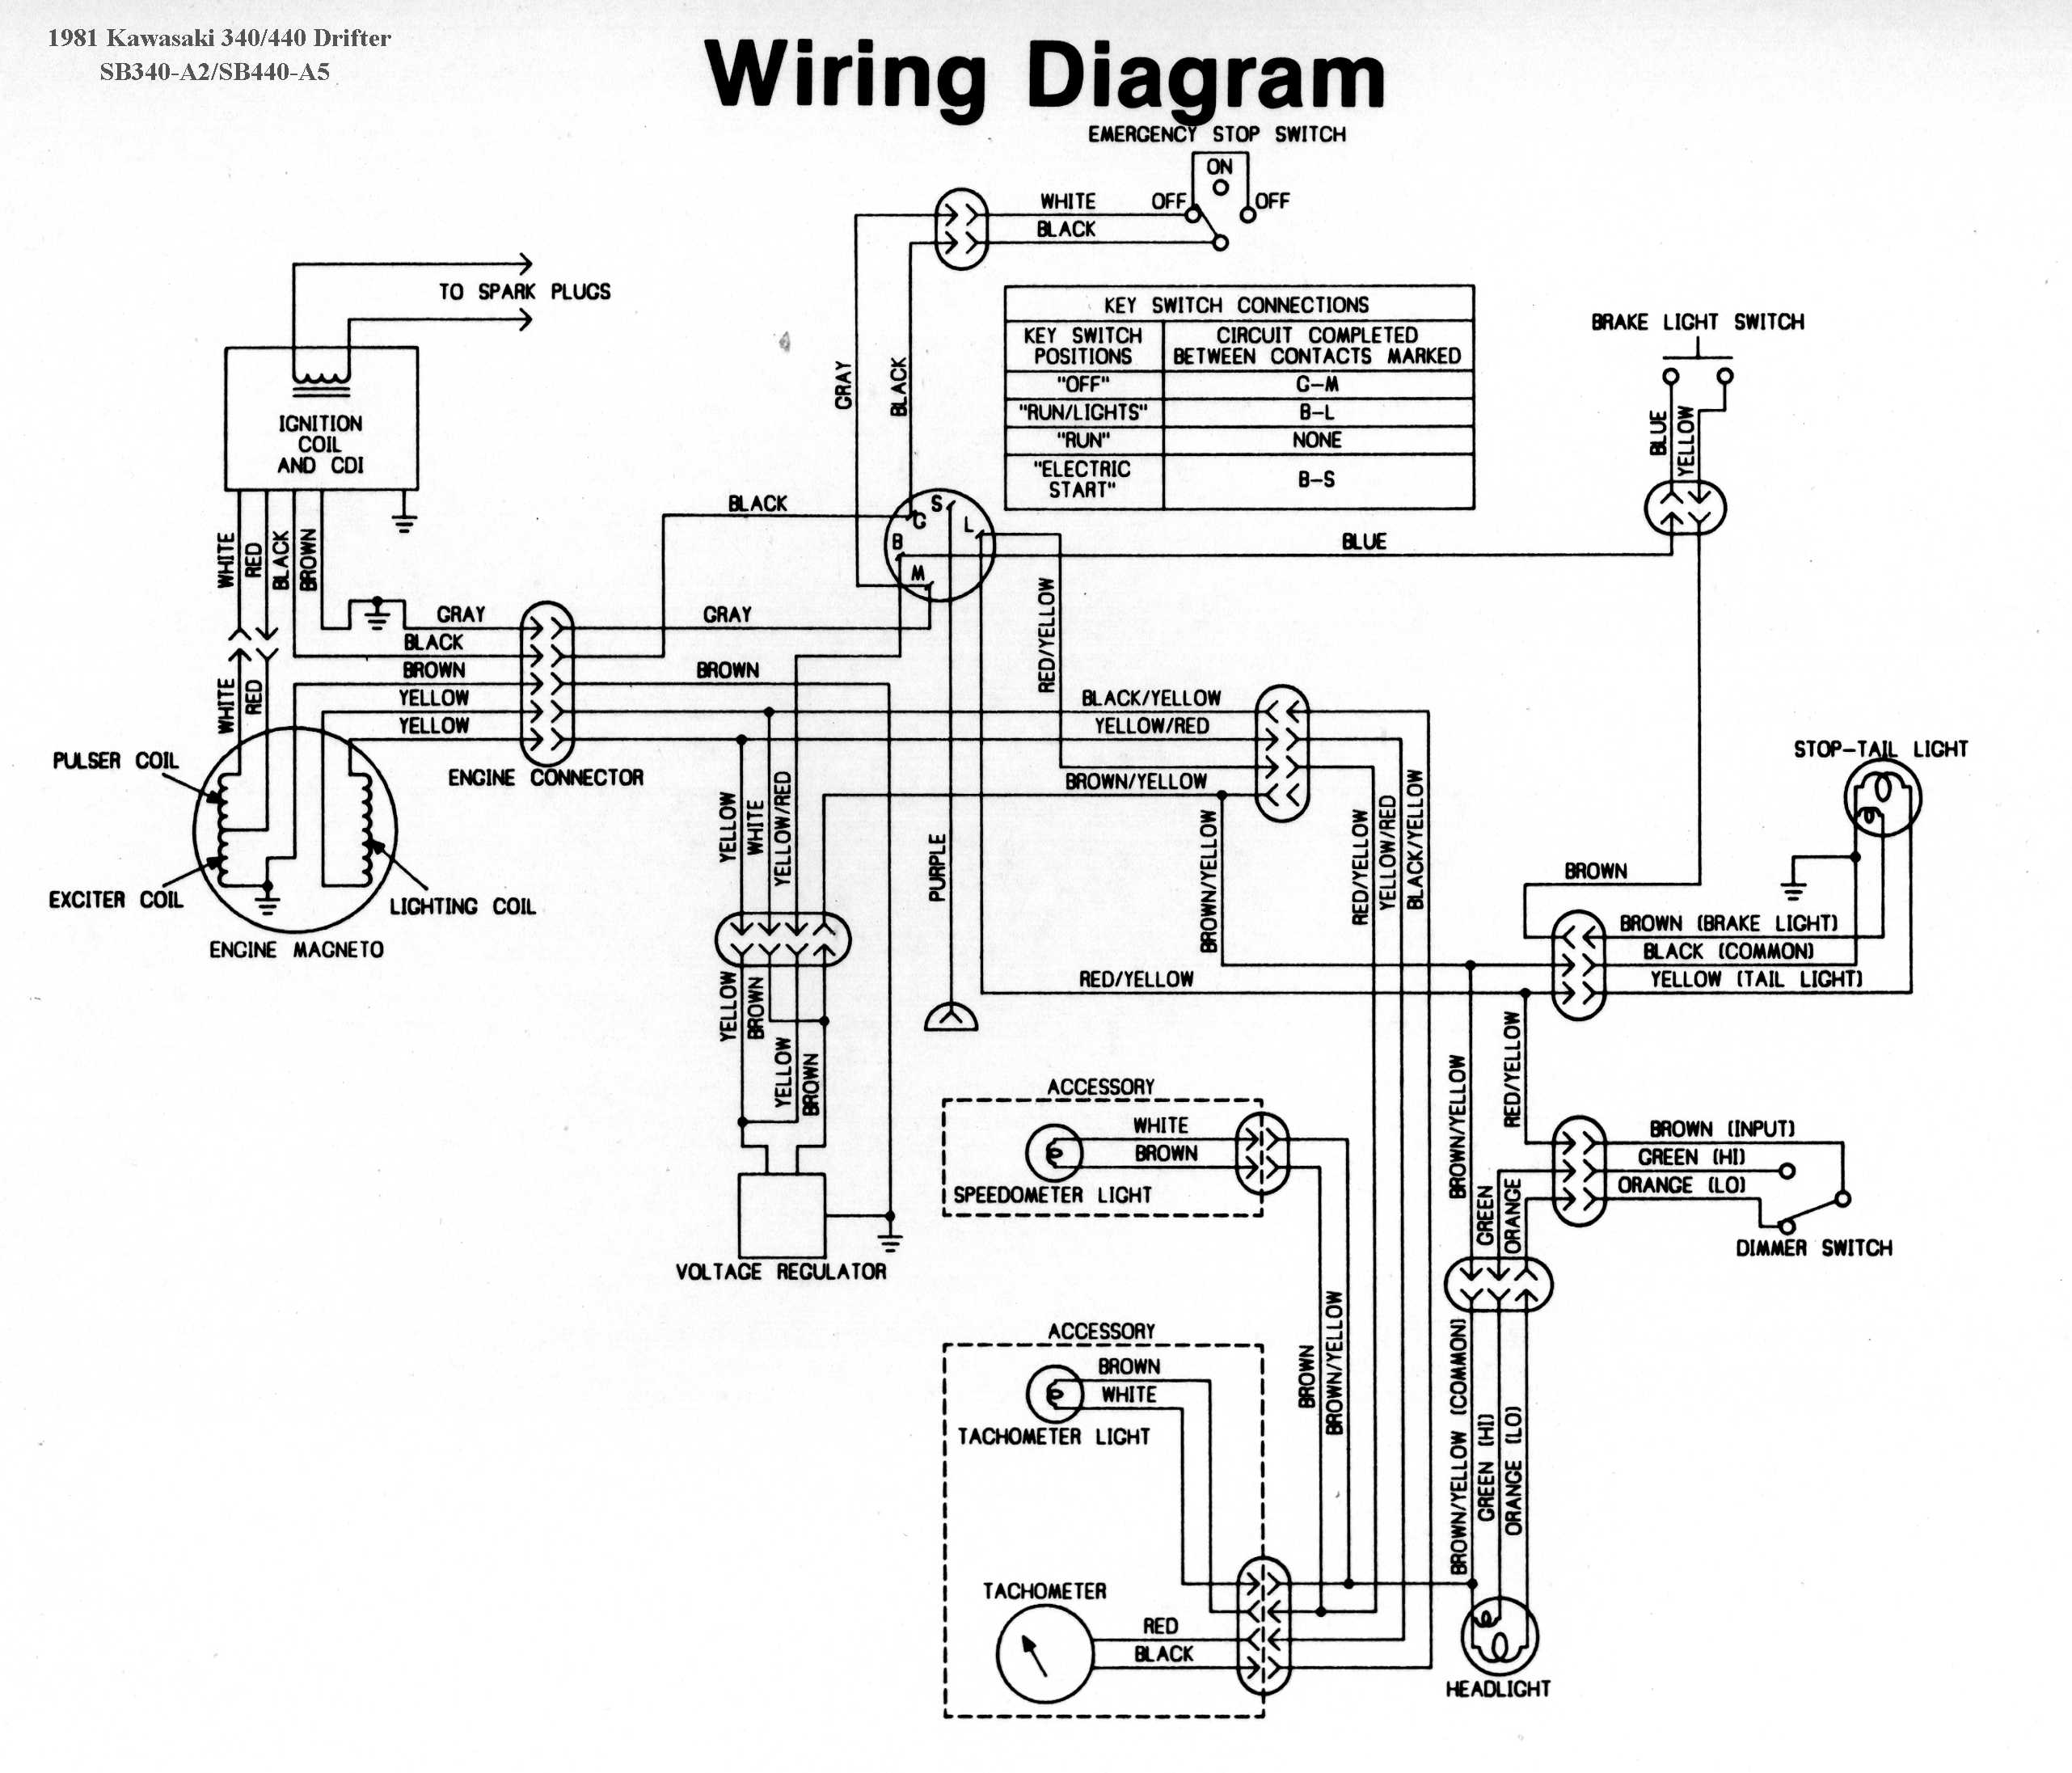 Kawasaki X2 Engine Diagram in addition Kawasaki Jet Ski Wiring Diagrams furthermore Kawasaki X2 Engine Diagram together with Kawasaki X2 Engine Diagram moreover Can Am 350 Atv Engine Diagram. on kawasaki jet mate wiring diagram